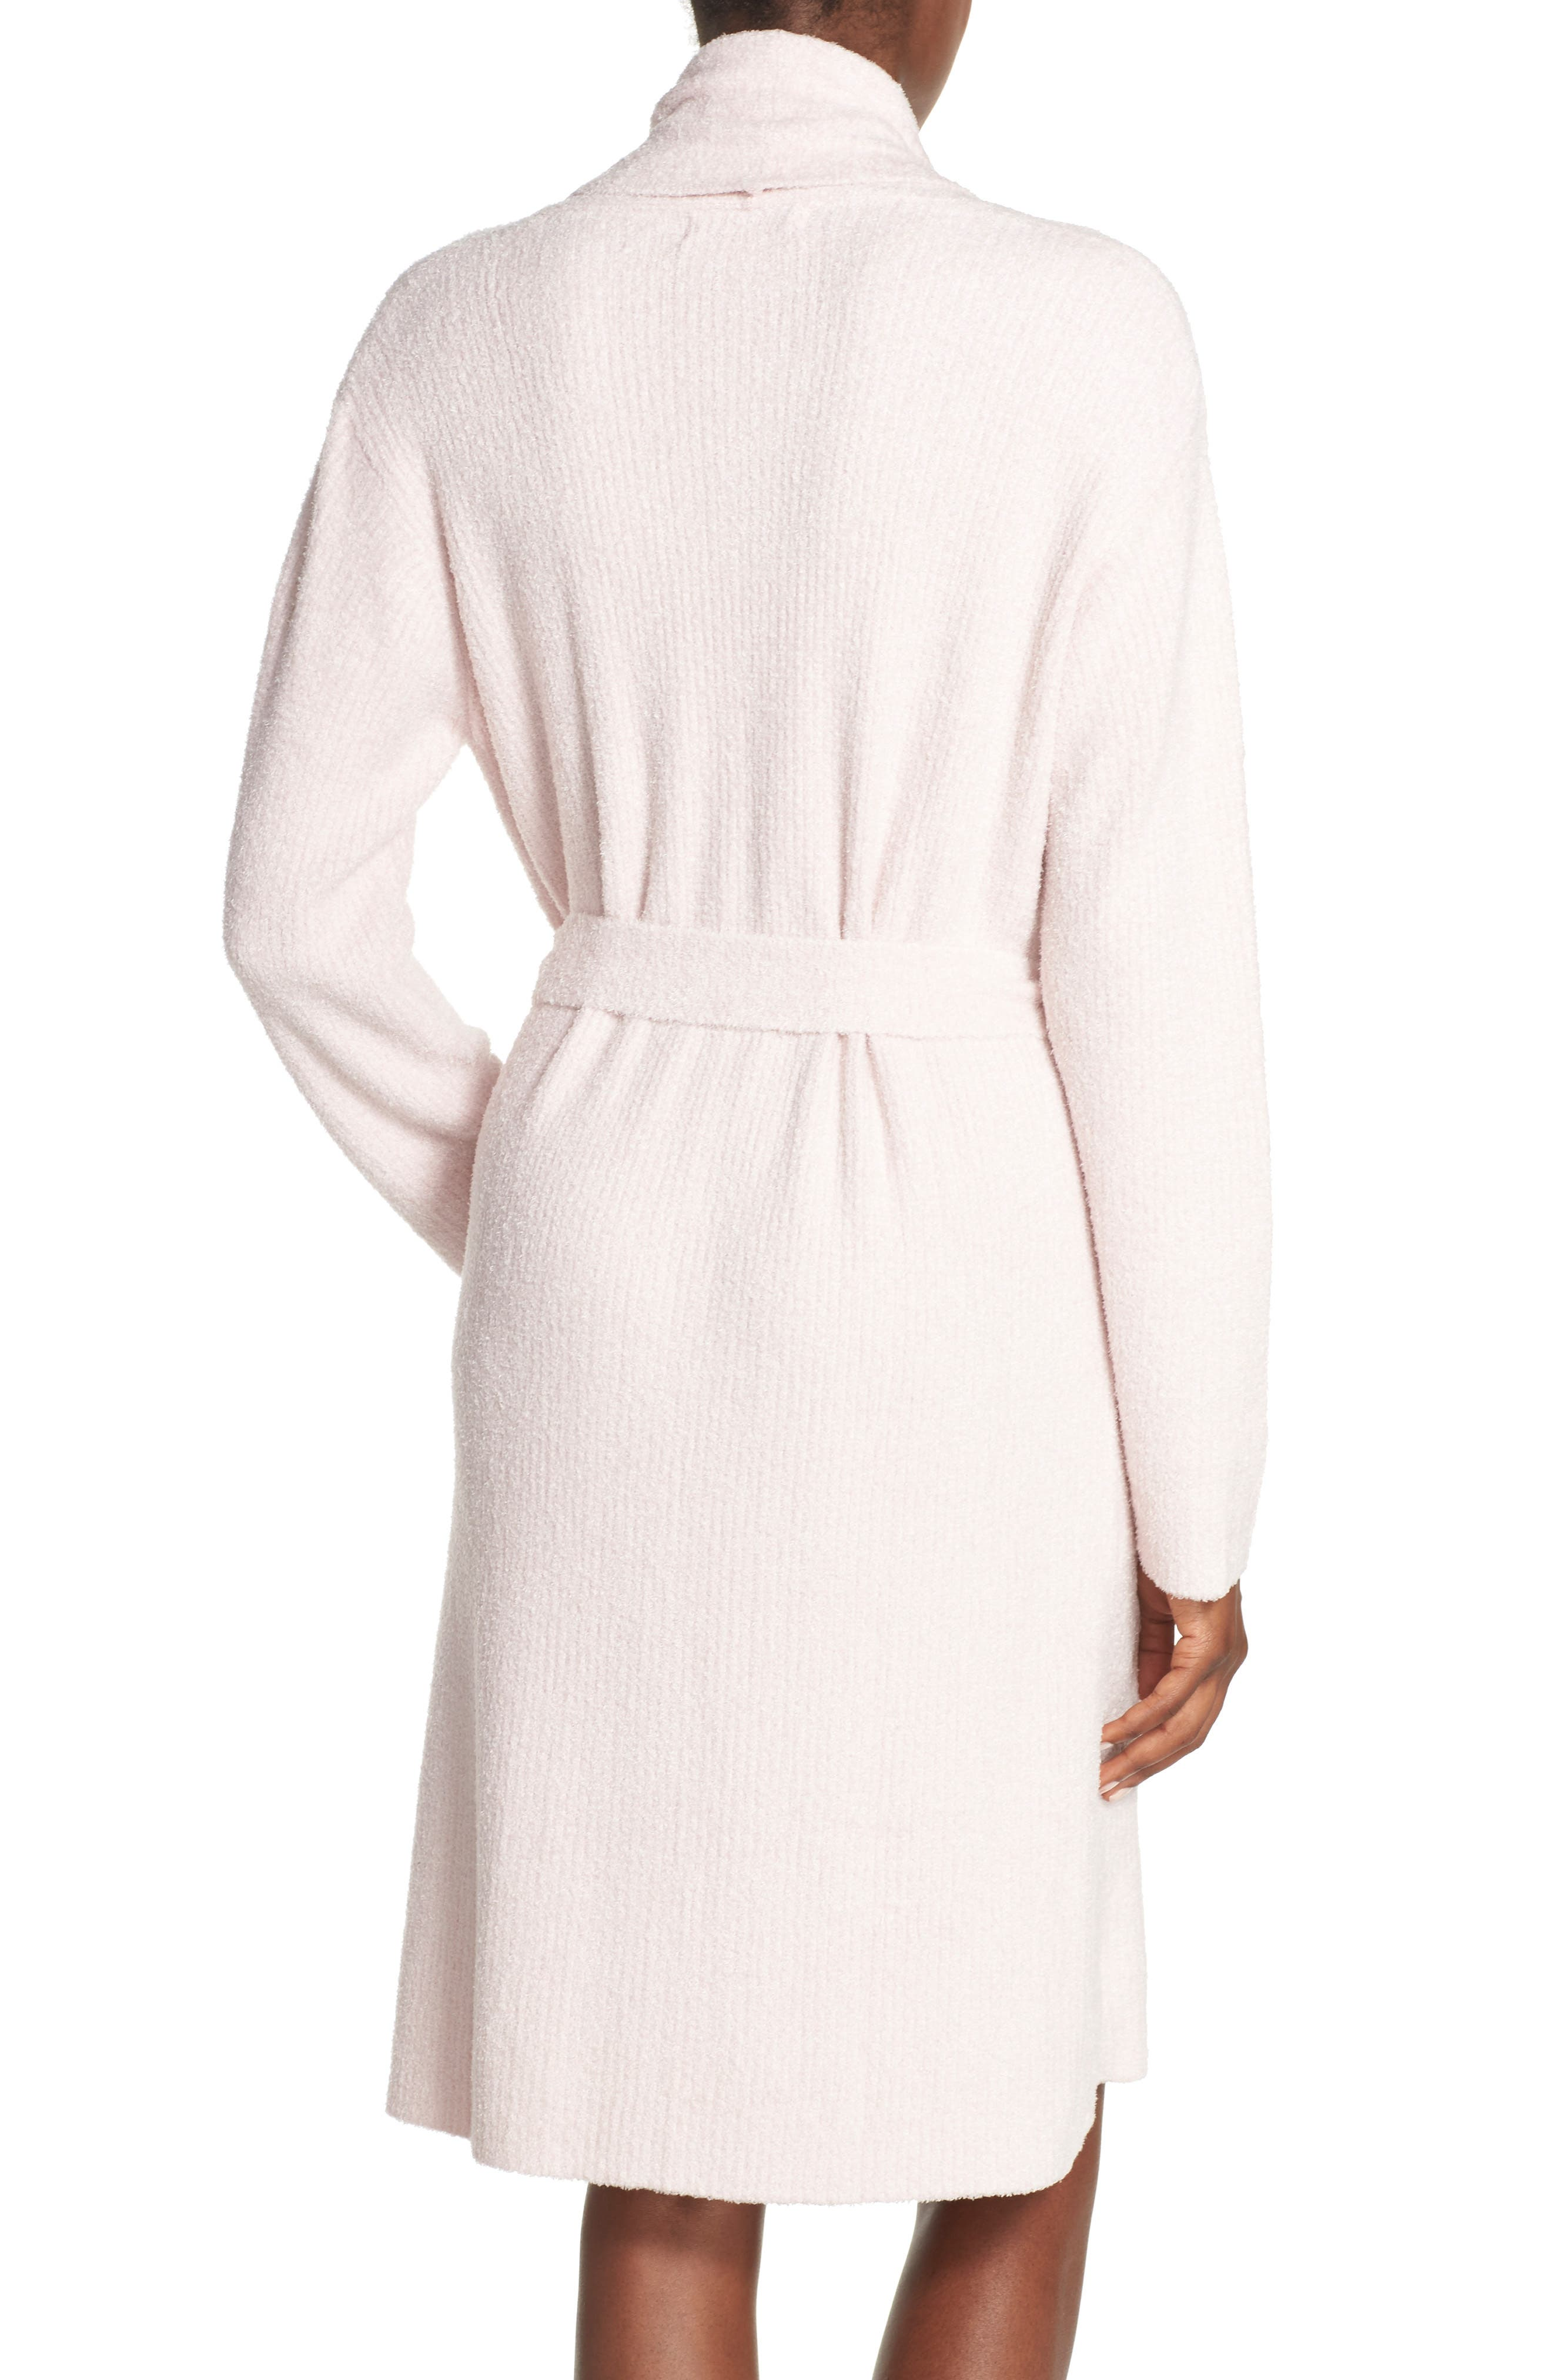 Barefoot Dreams CozyChic Lite<sup>®</sup> Short Robe,                             Alternate thumbnail 2, color,                             682